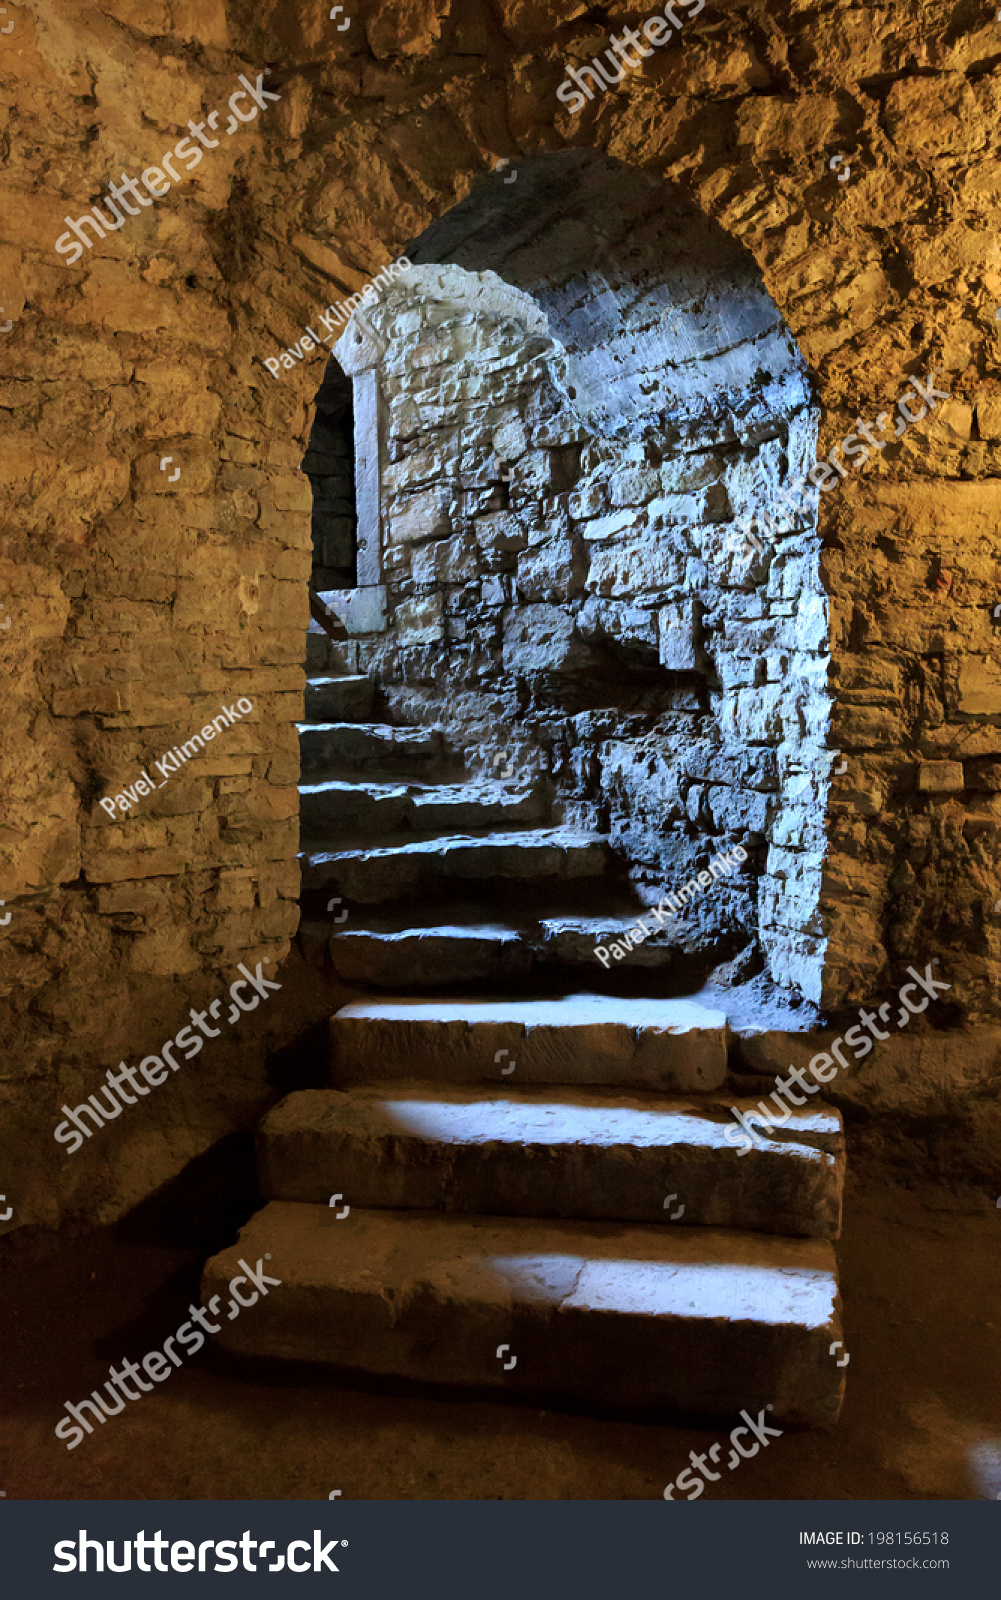 stone arch and steps in underground castte stock photo 198156518 shutterstock. Black Bedroom Furniture Sets. Home Design Ideas